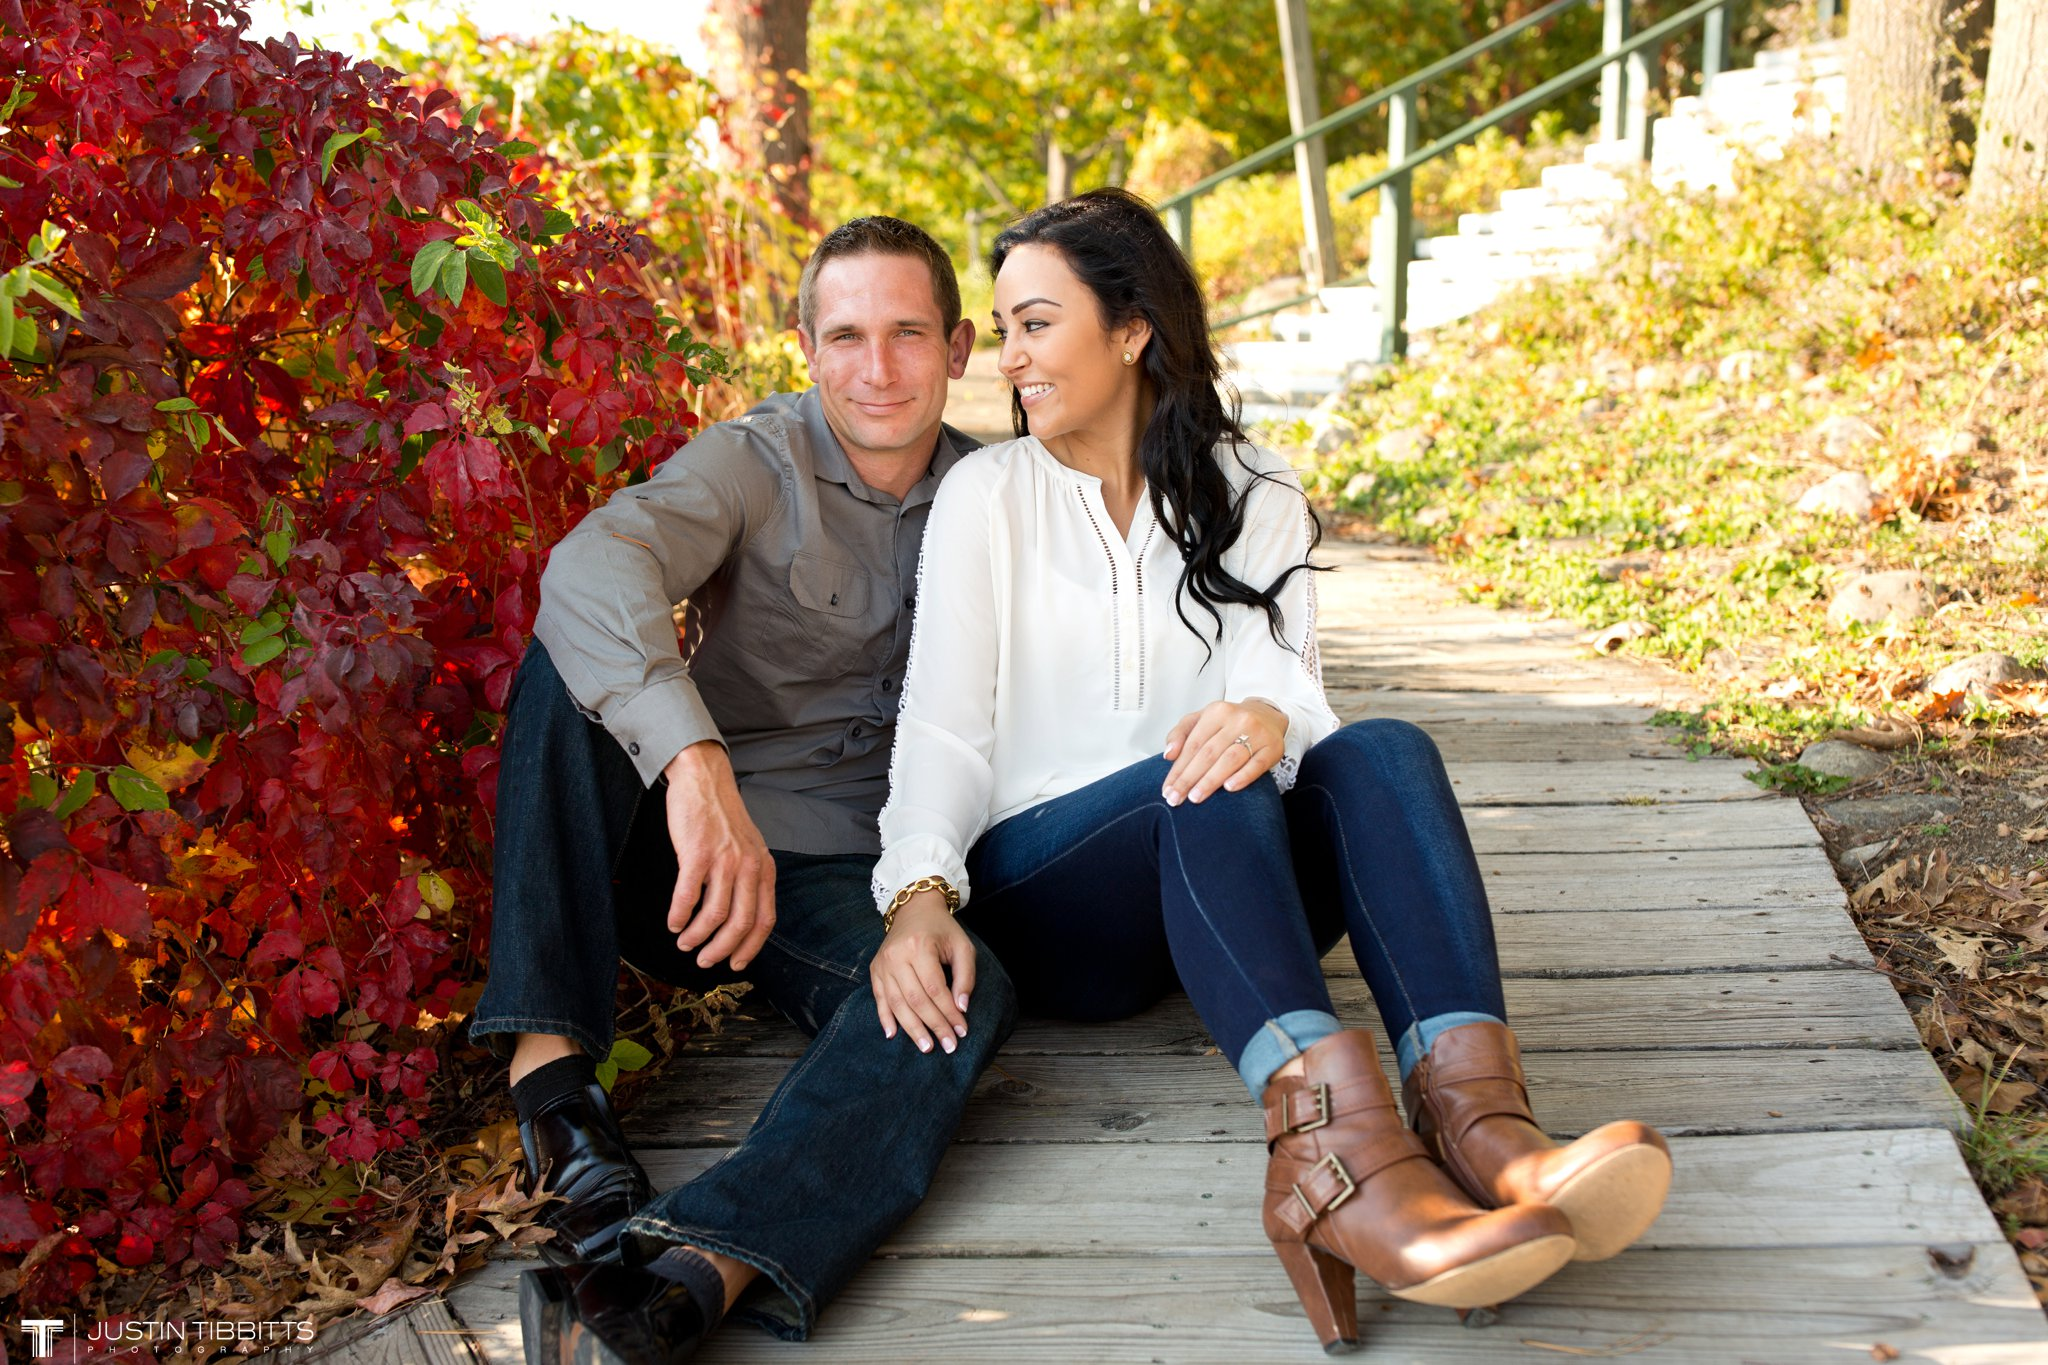 sagamore-engagement-photos-by-justin-tibbitts-photography-with-laina-and-mike_0010